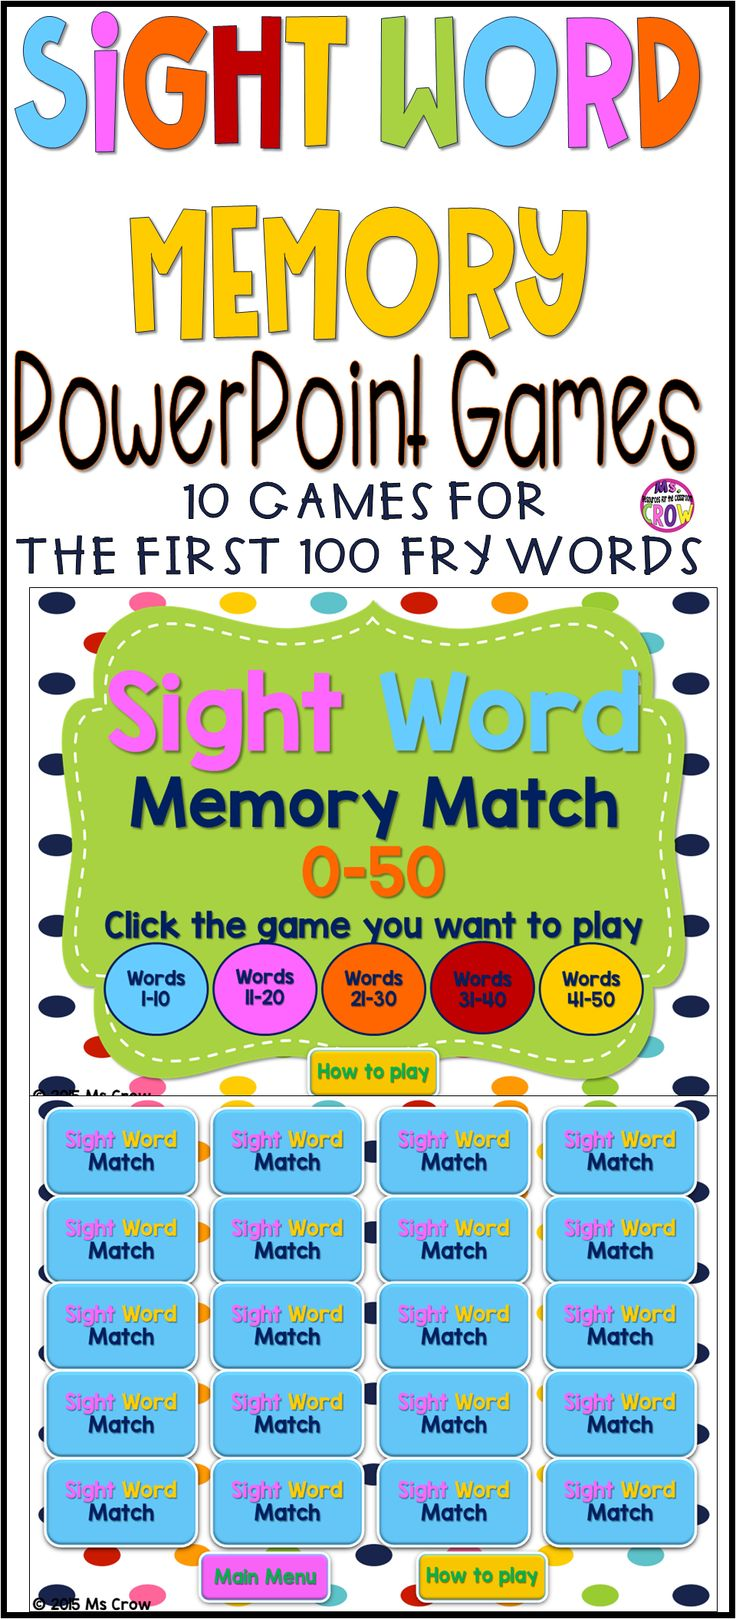 Sight Word Games 10 Powerpoint Games  Memory Match Sight Words